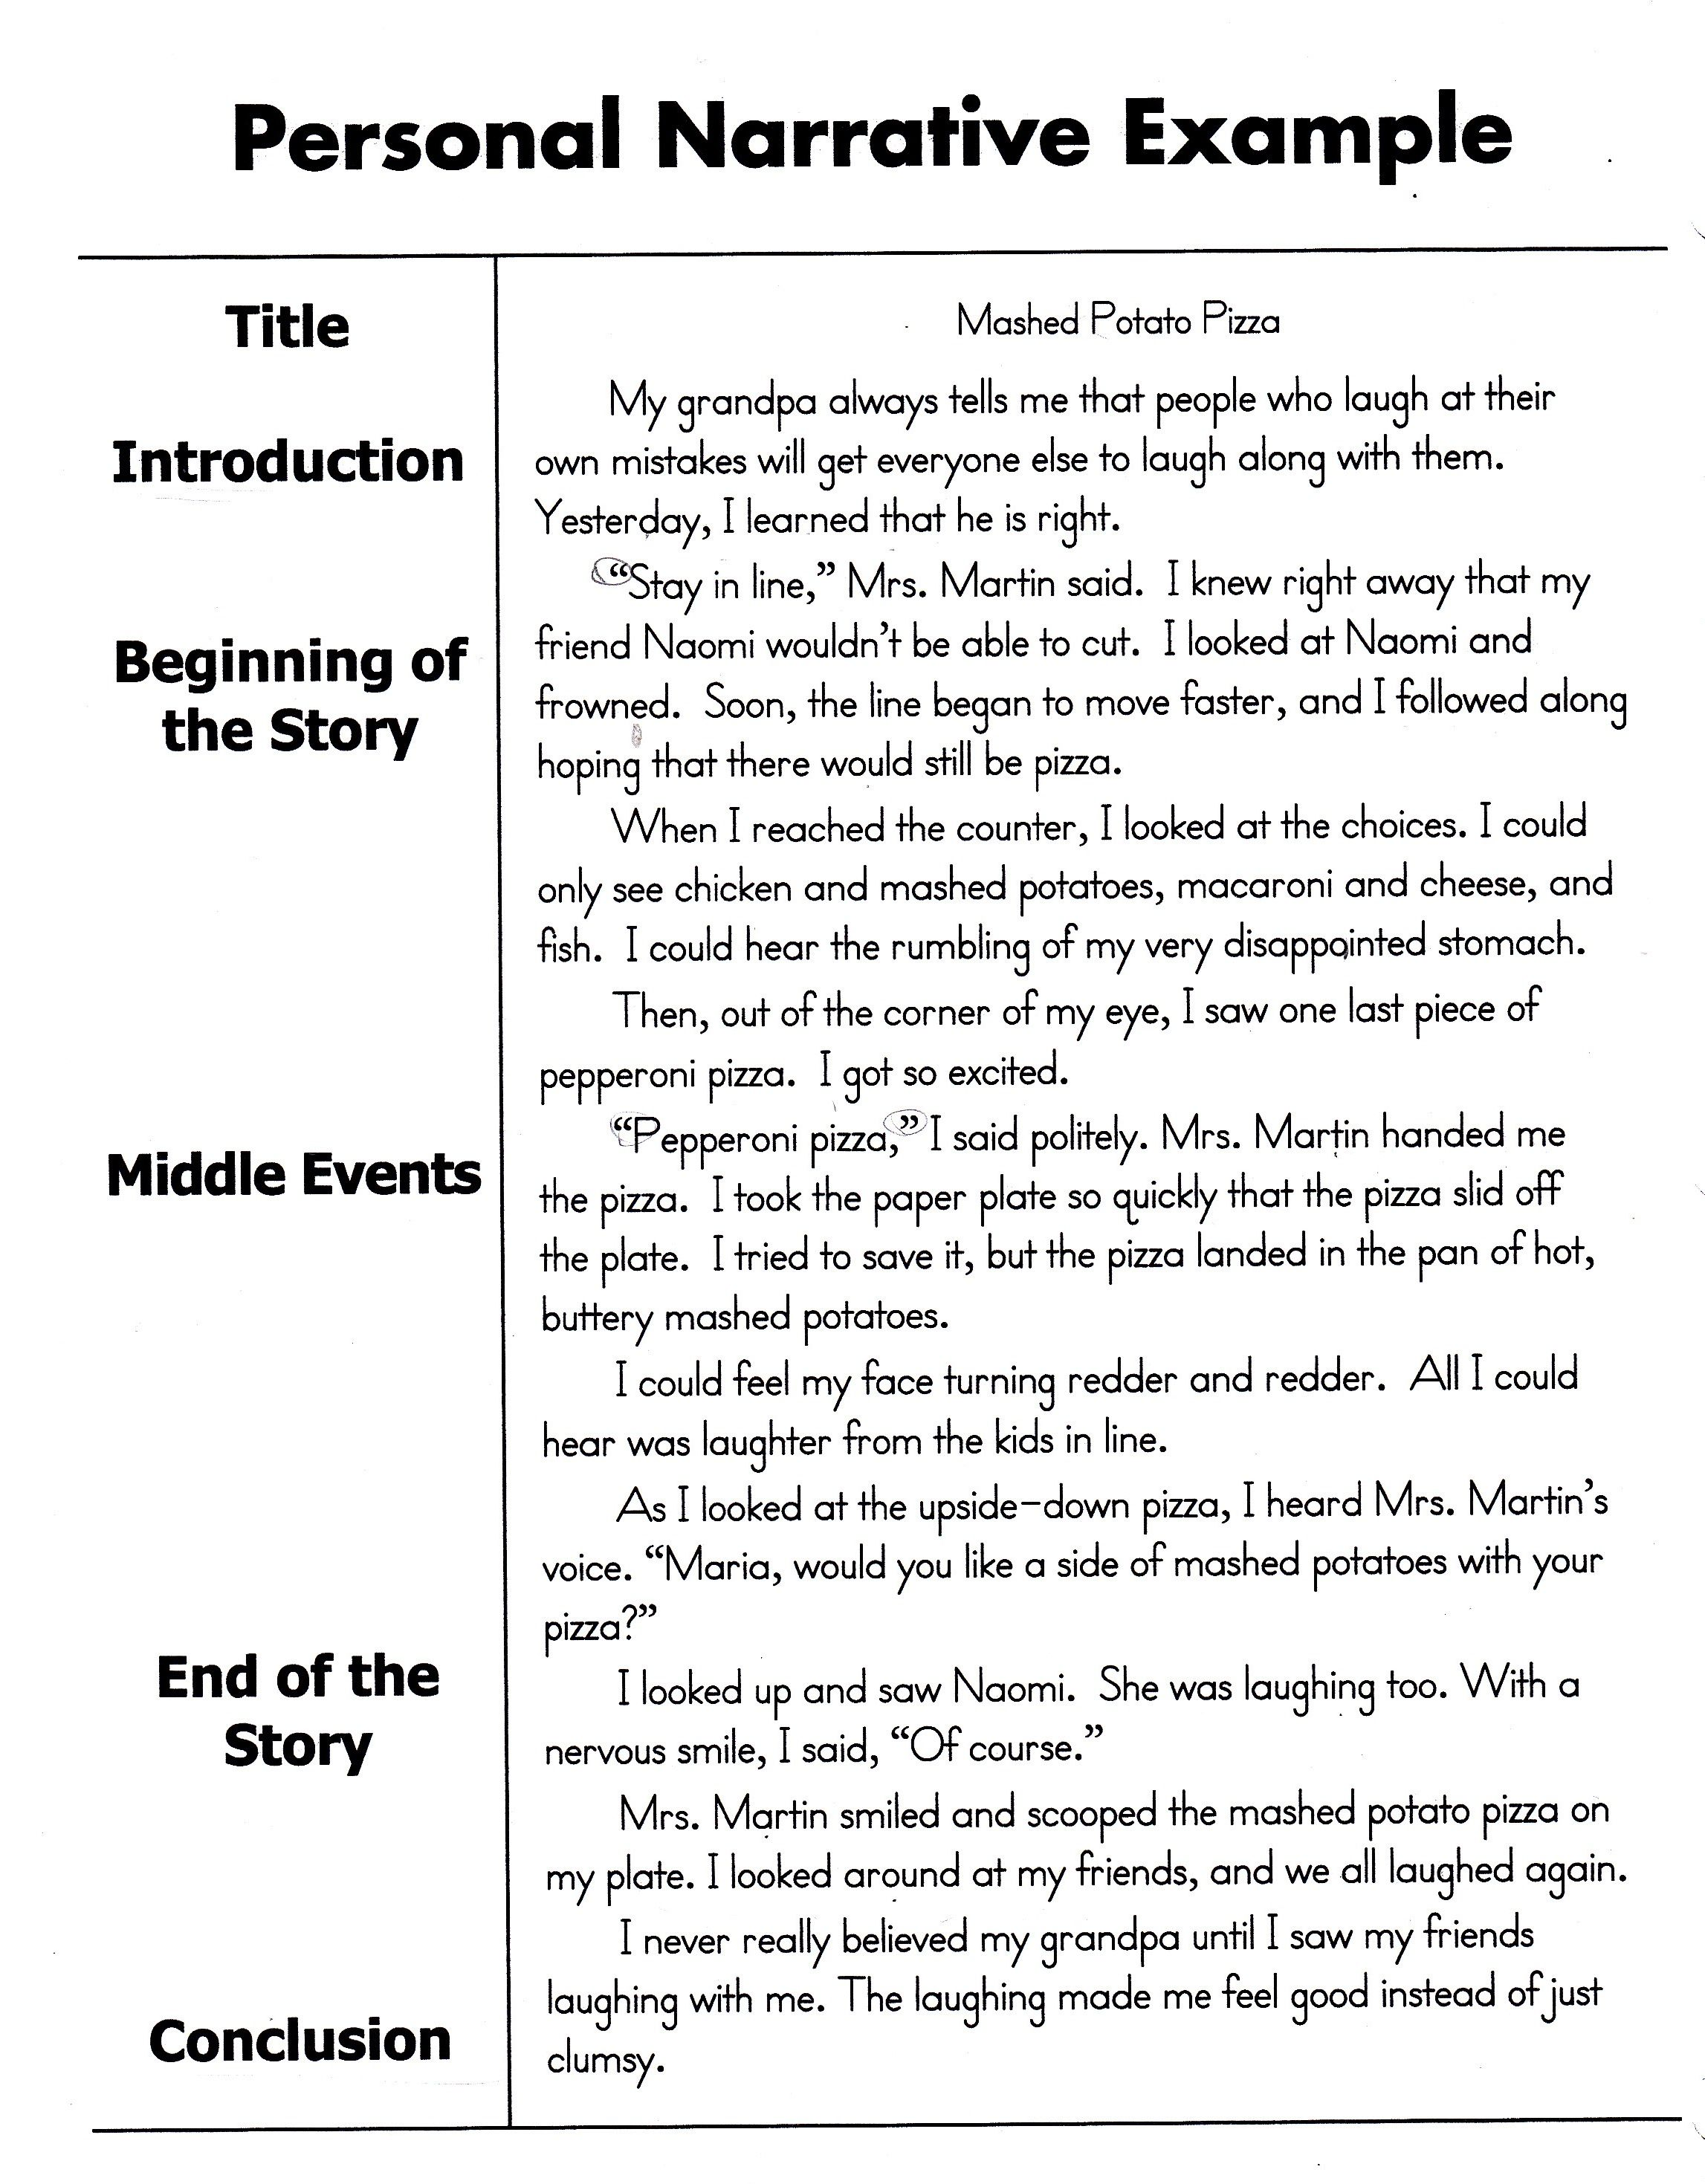 007 How To Write Personal Narrative Essay For College Fascinating A Full